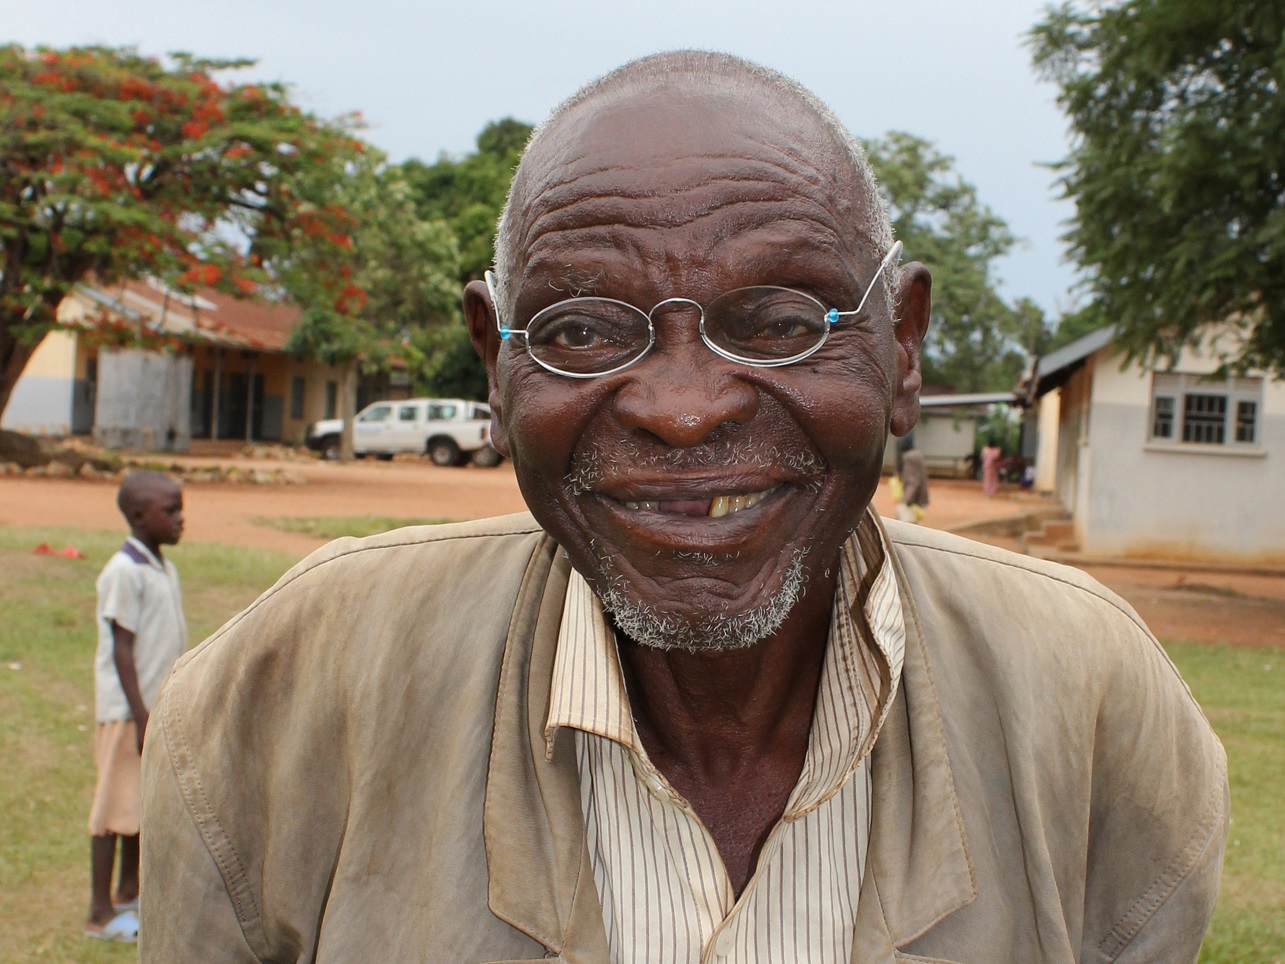 024_OneDollarGlasses_Old_Man_Uganda_2012_copyright_Martin_Aufmuth.JPG